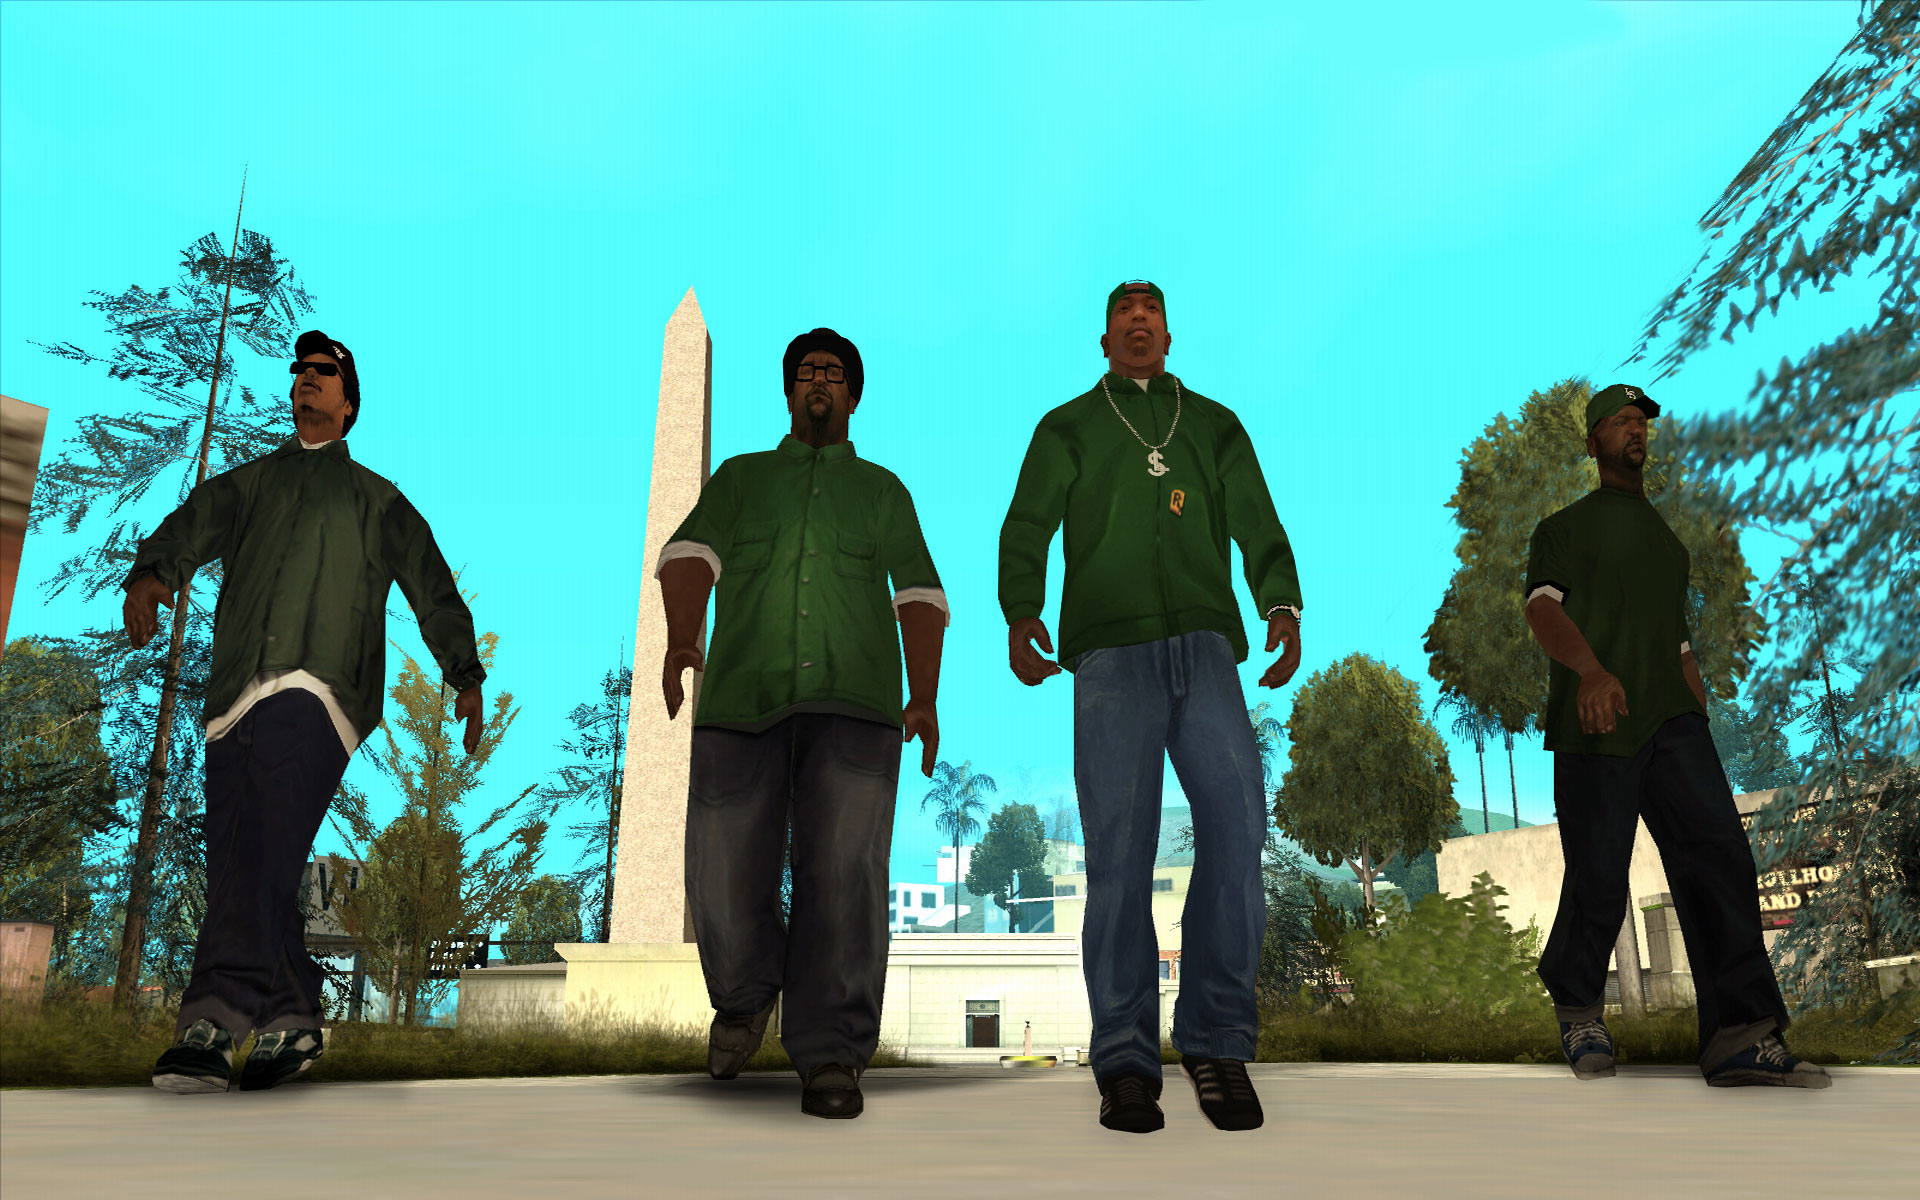 GTA-SanAndreas com - PC Screenshots